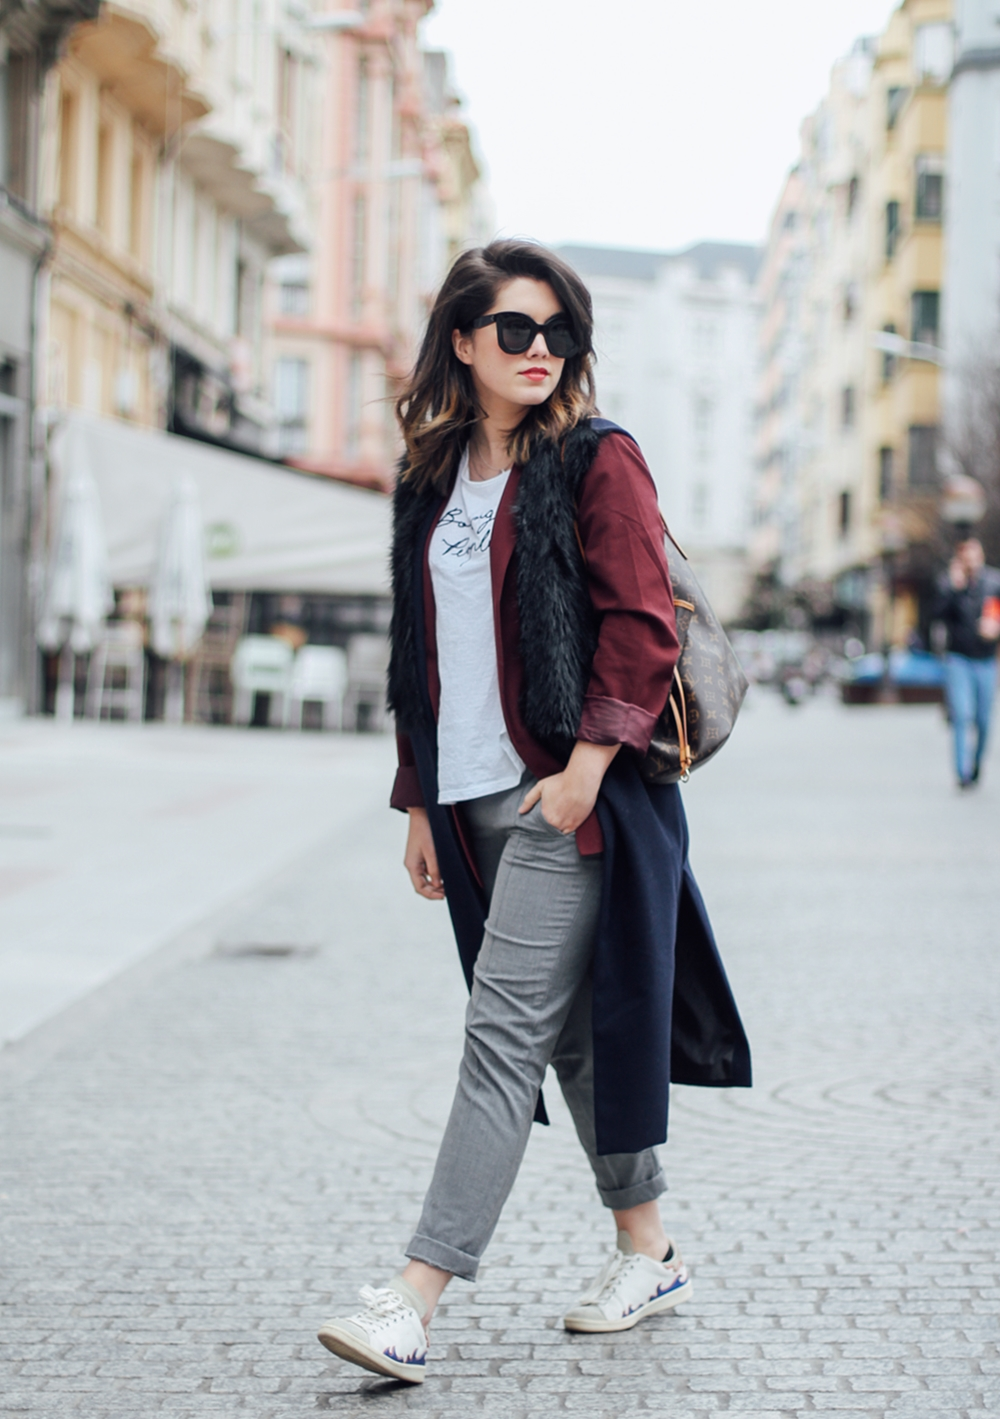 isabel marant sneakers with faux fur vest and red blazer streetstyle baby marta sunglasses celine